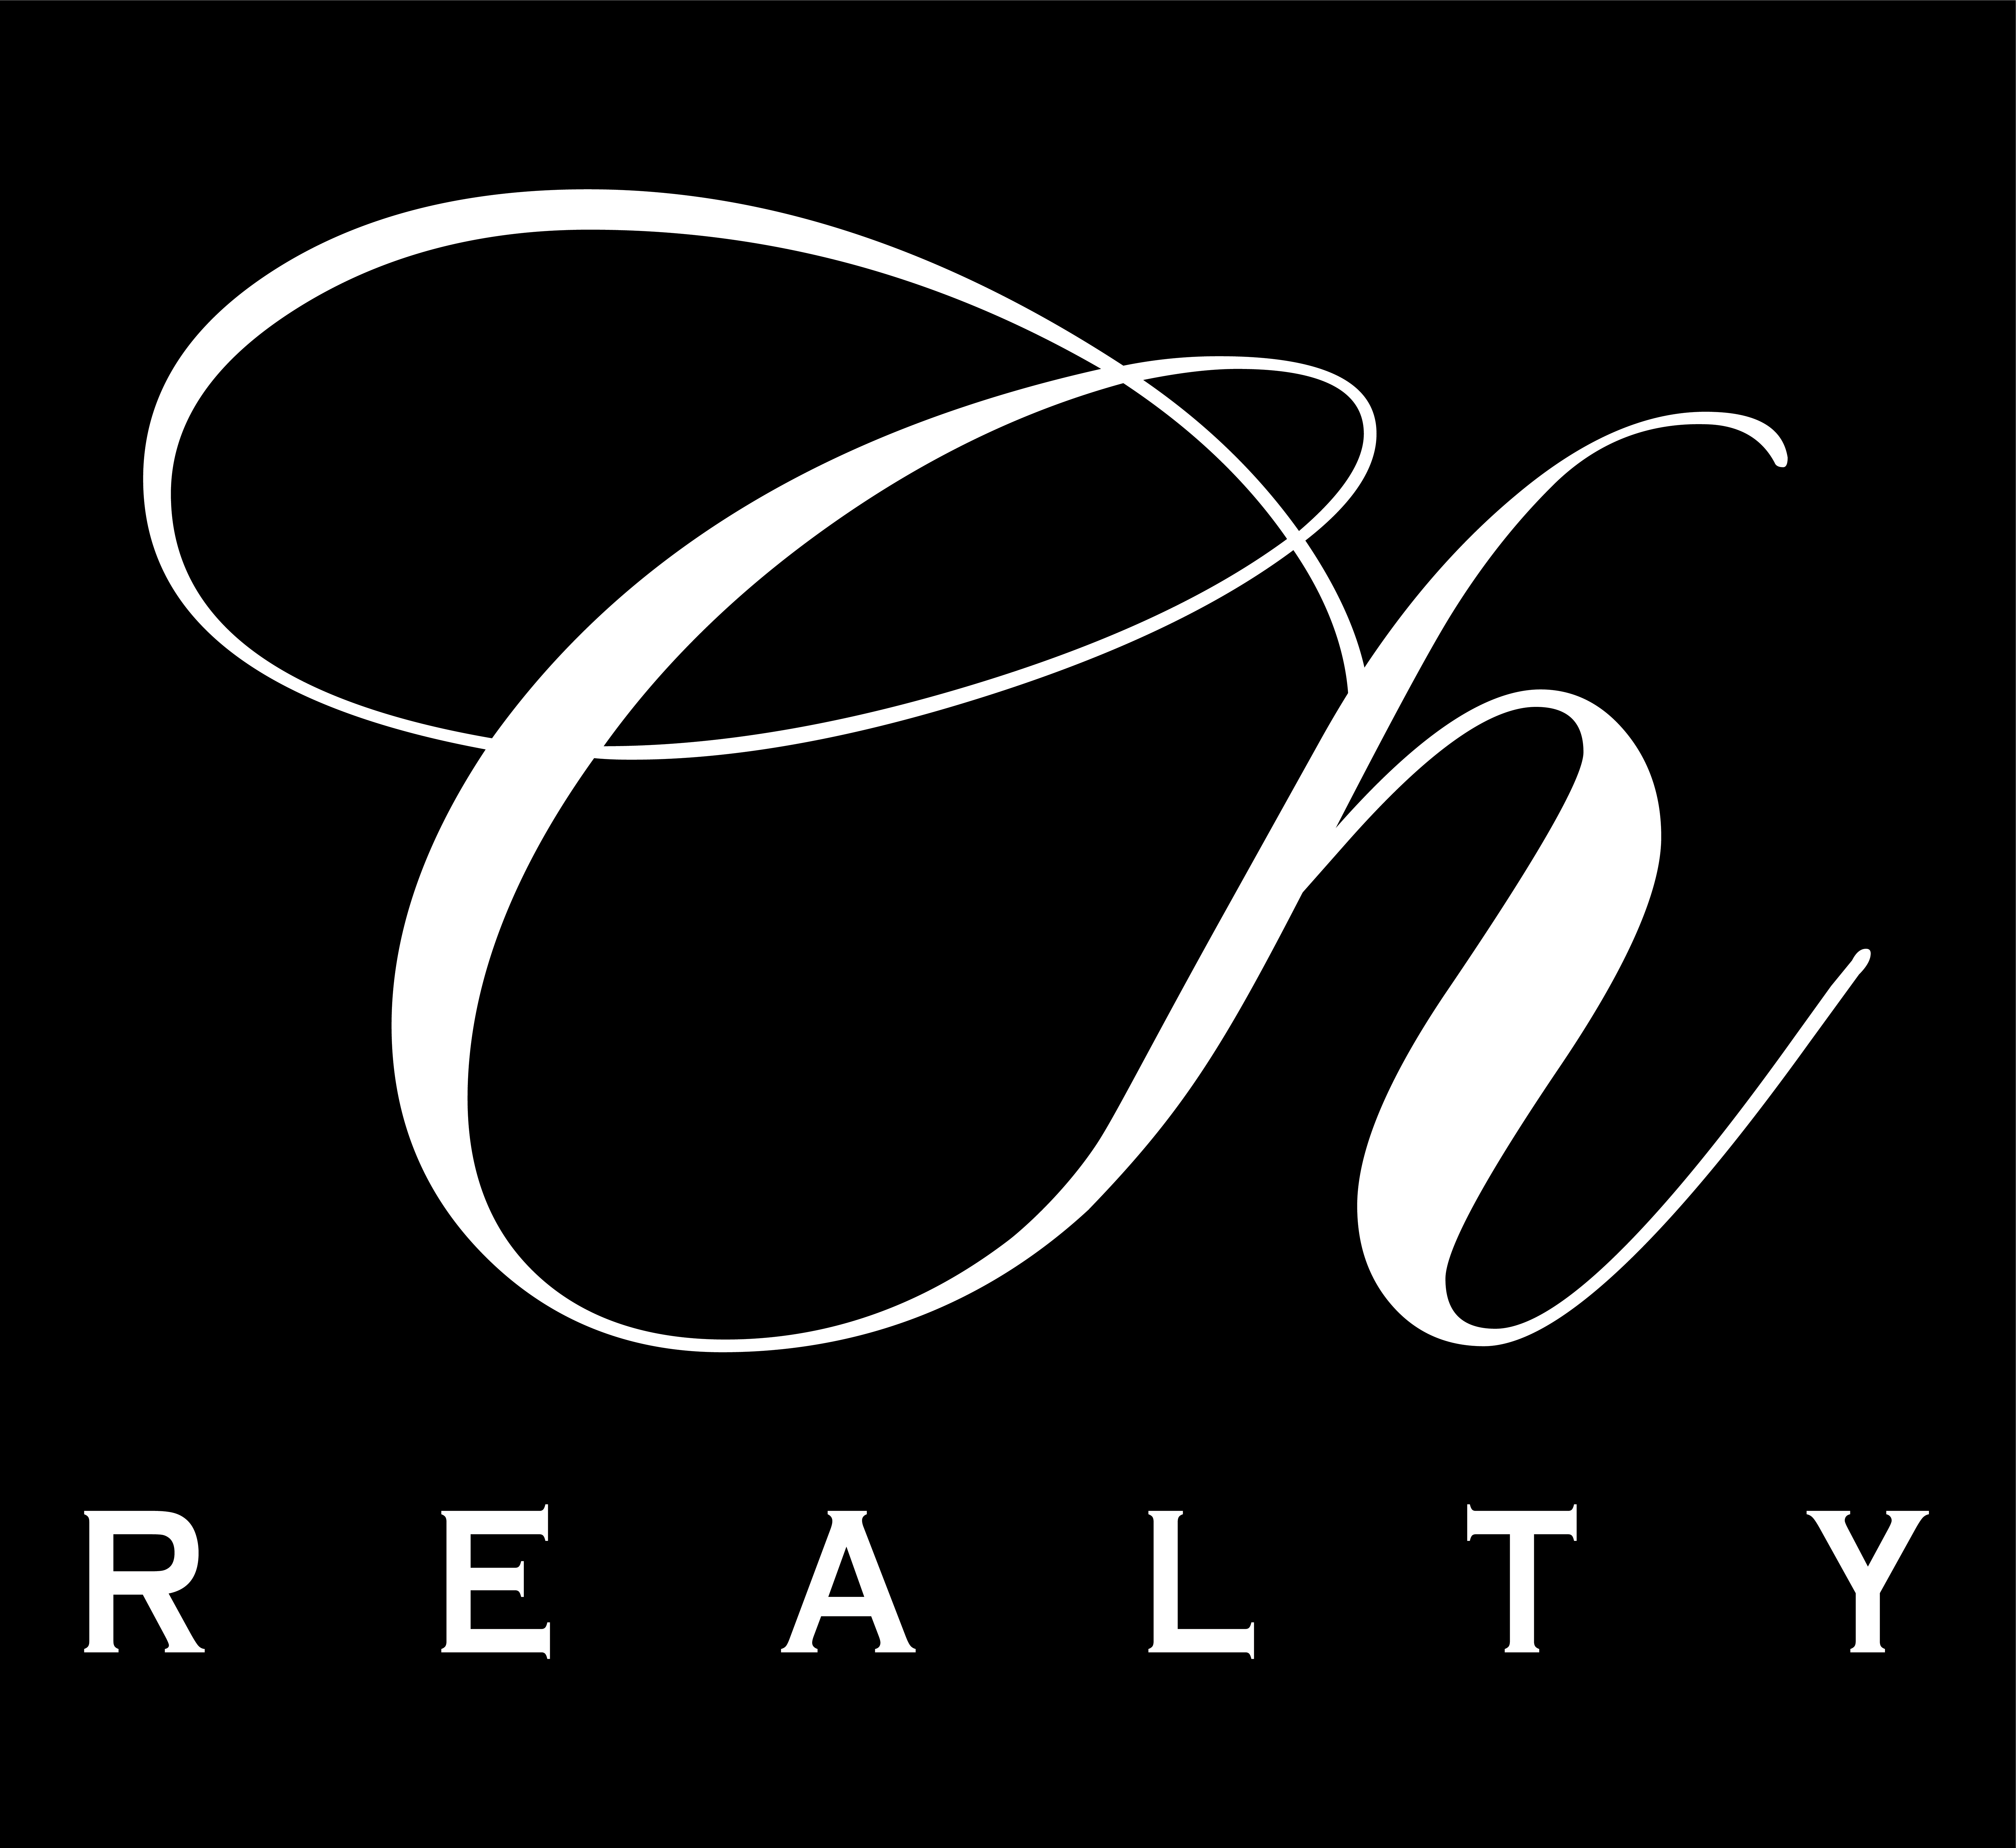 CH_Realty_Logo_Design-06.png